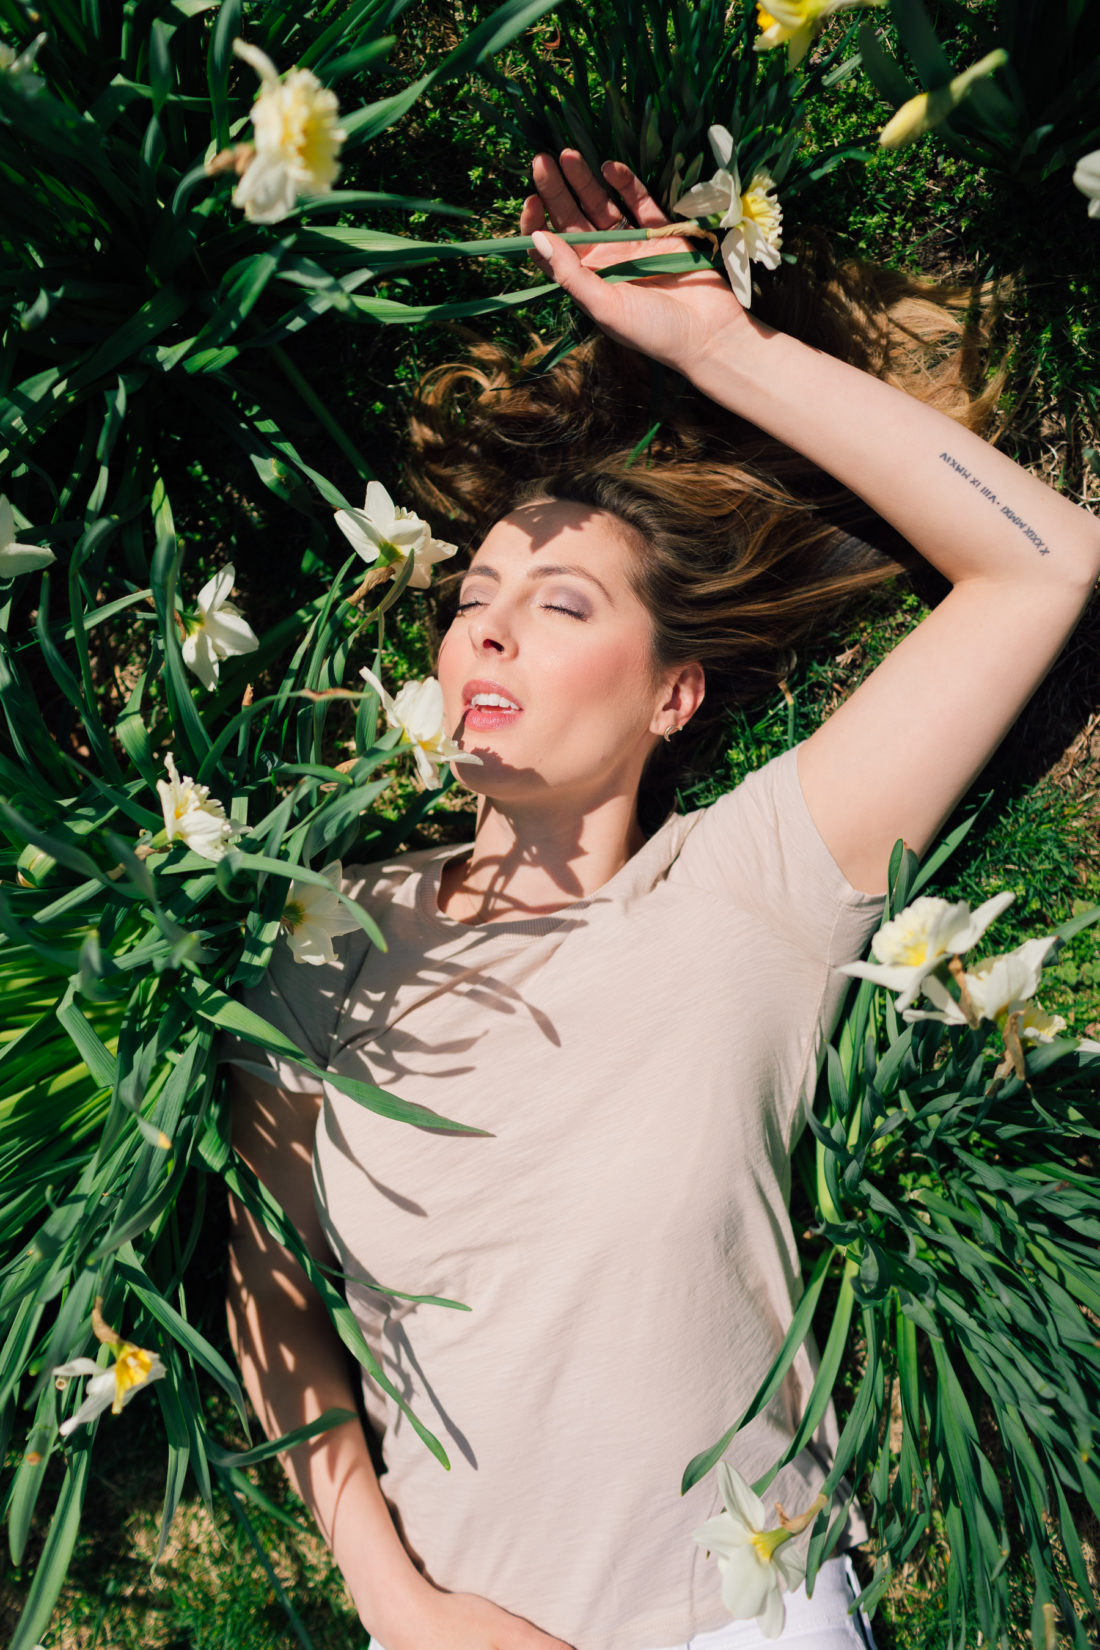 Eva Amurri Martino of Happily Eva After lies in a pile of daffodils and shares her favorite nude colored pieces for spring